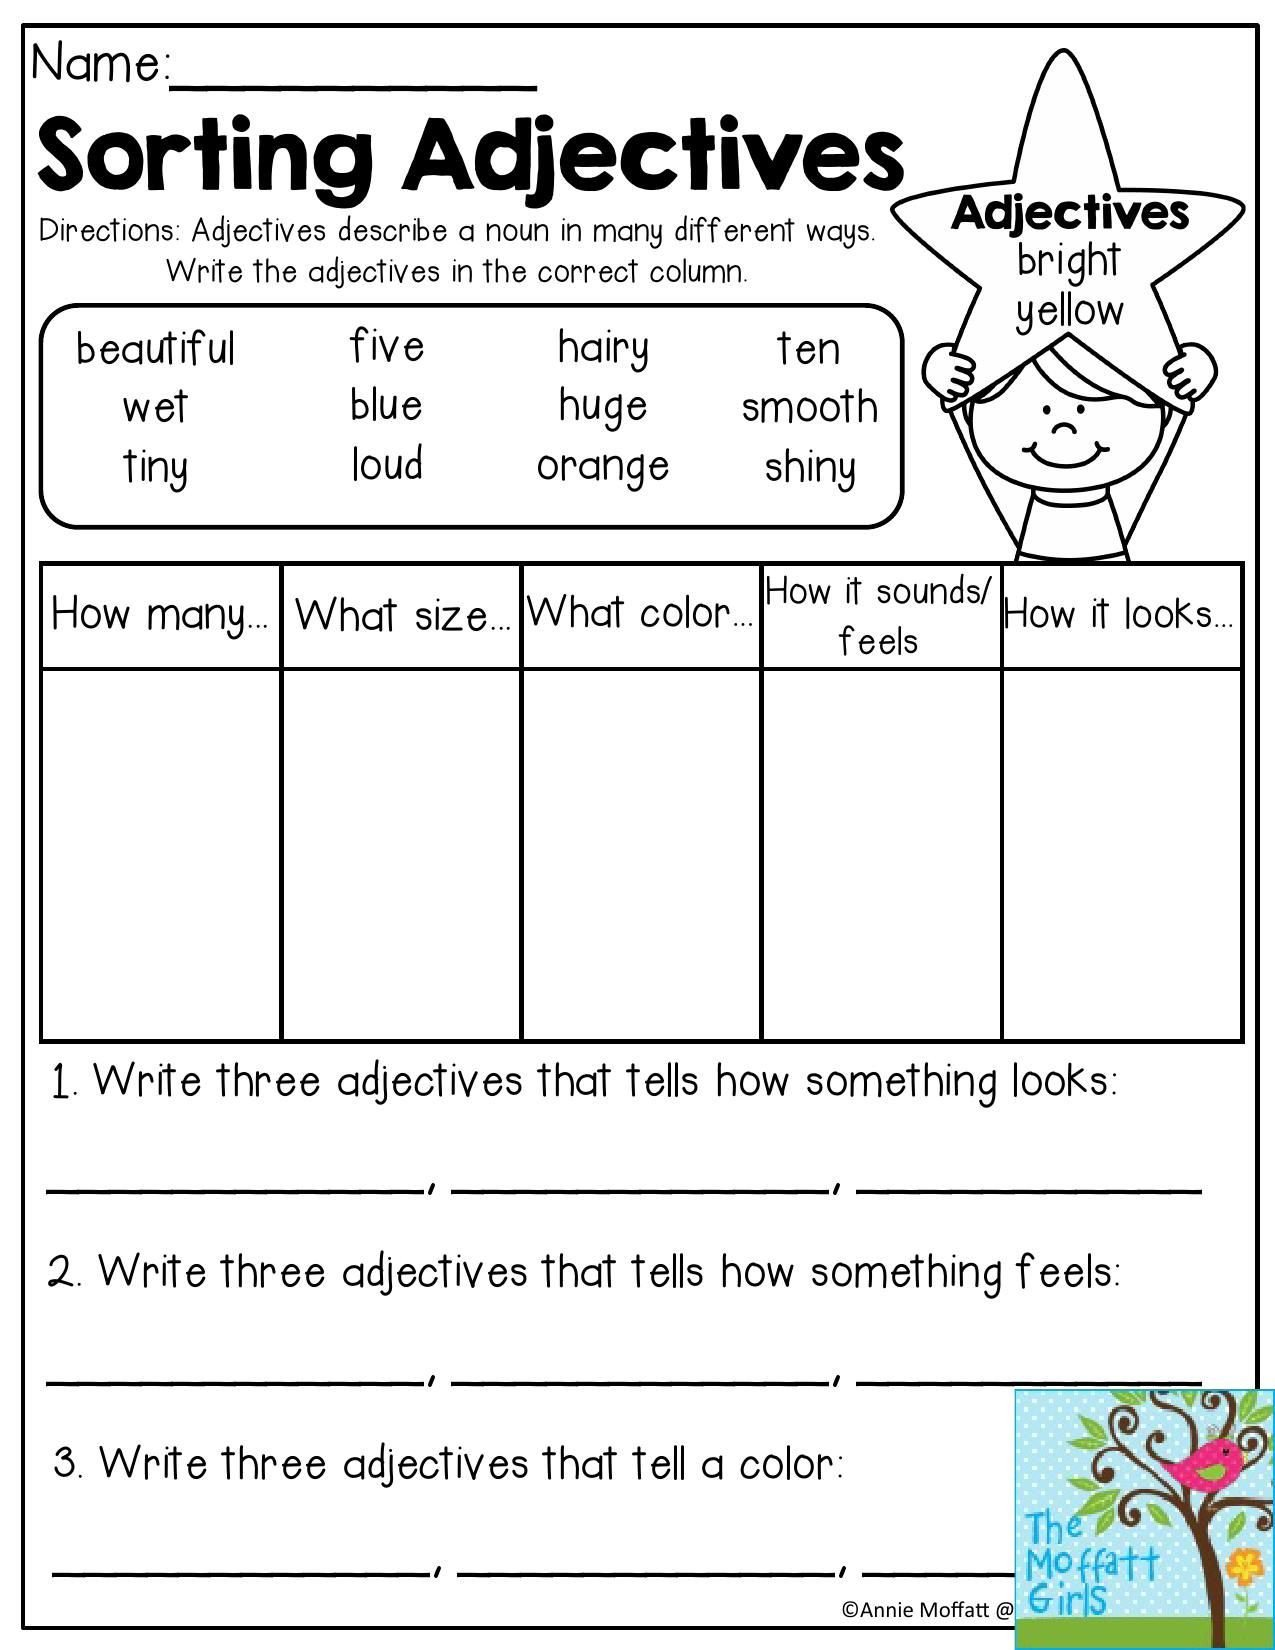 2nd grade grammarorksheets second to printable 5thorksheet and activities free